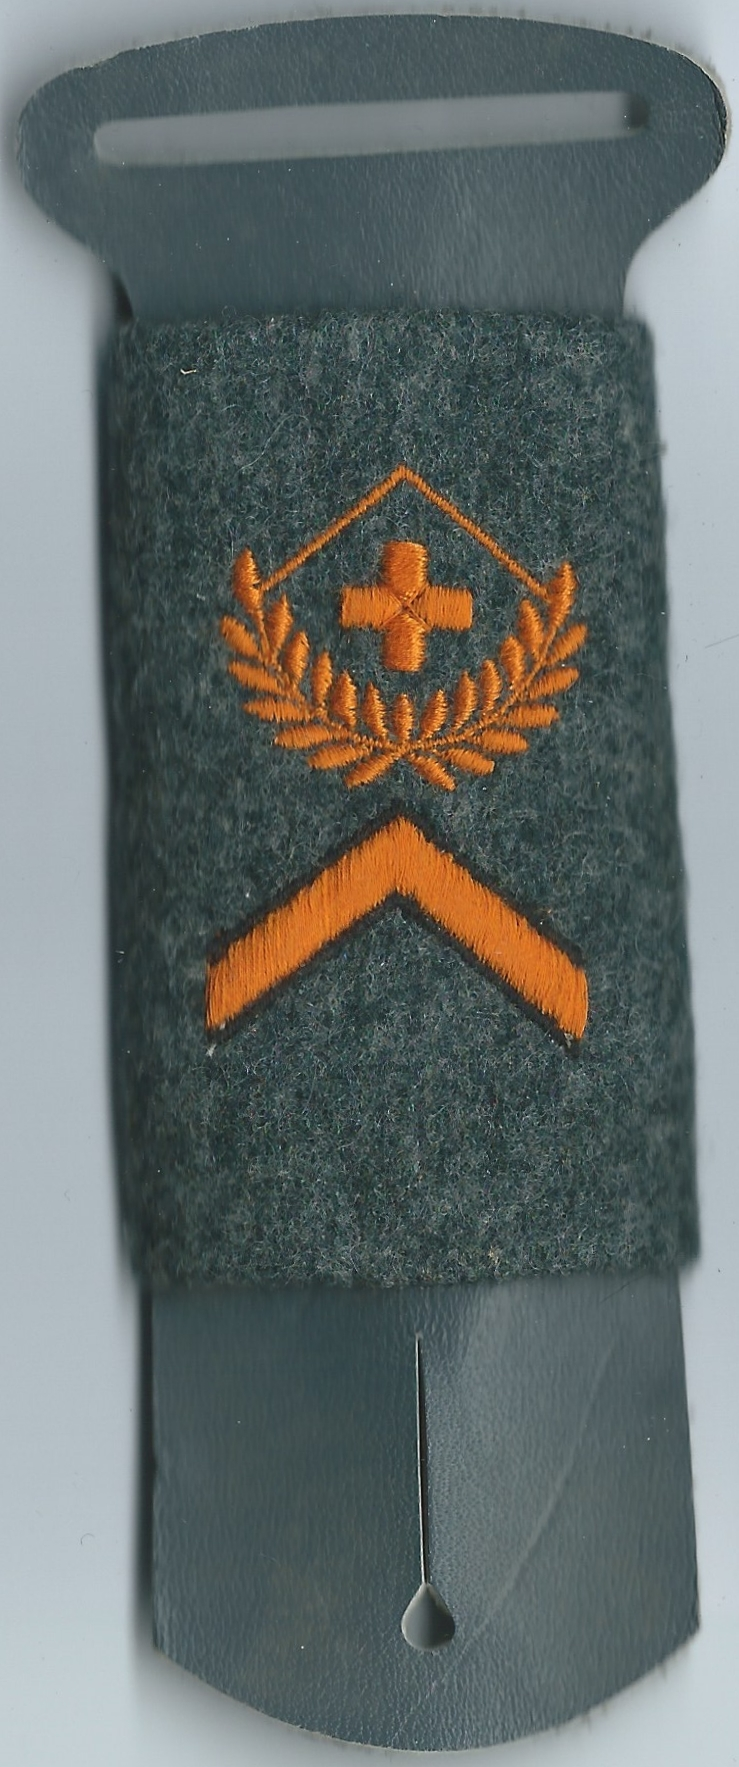 Ranks, badges, patches, epaulets of the Swiss Armed Forces - Page 14 Wachtm14